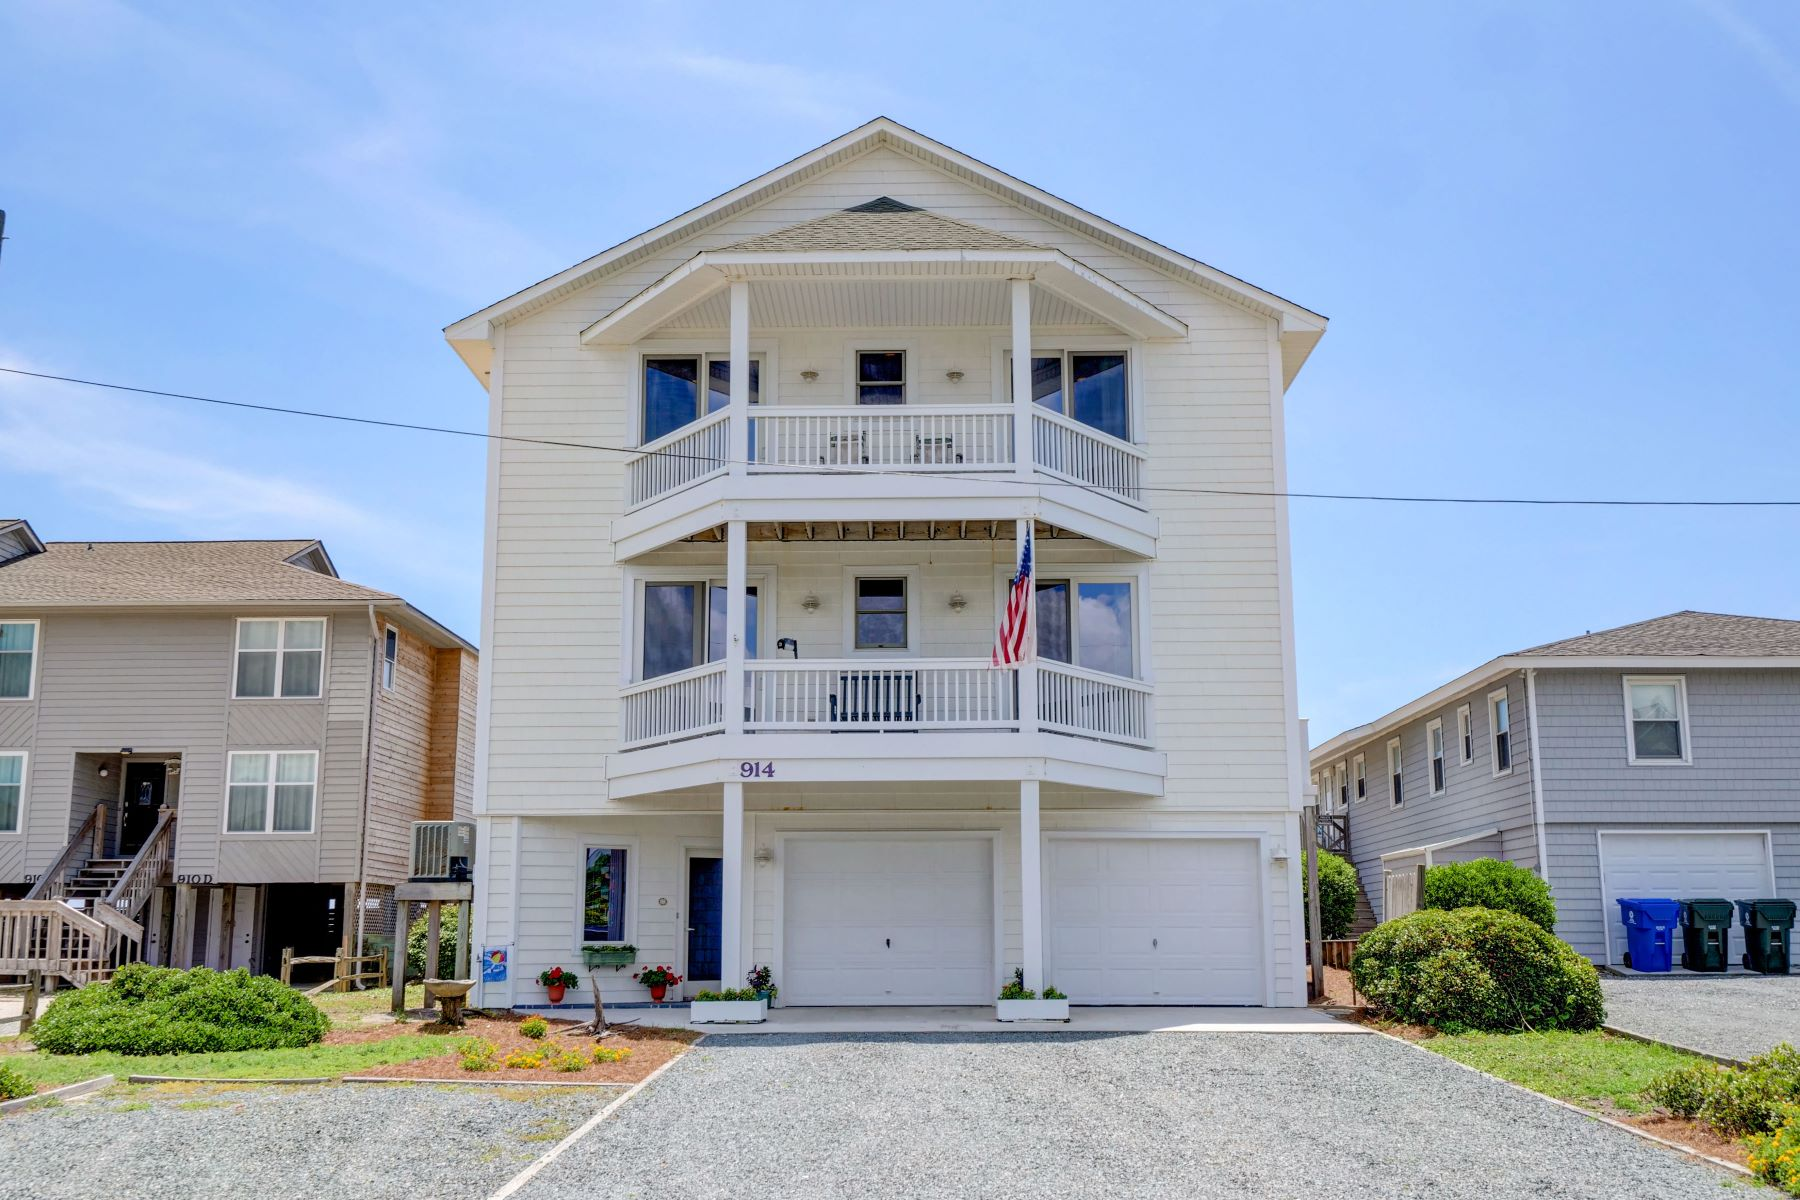 Single Family Homes for Active at Oceanfront Coastal Living at its Finest 914 S Shore Drive Surf City, North Carolina 28445 United States